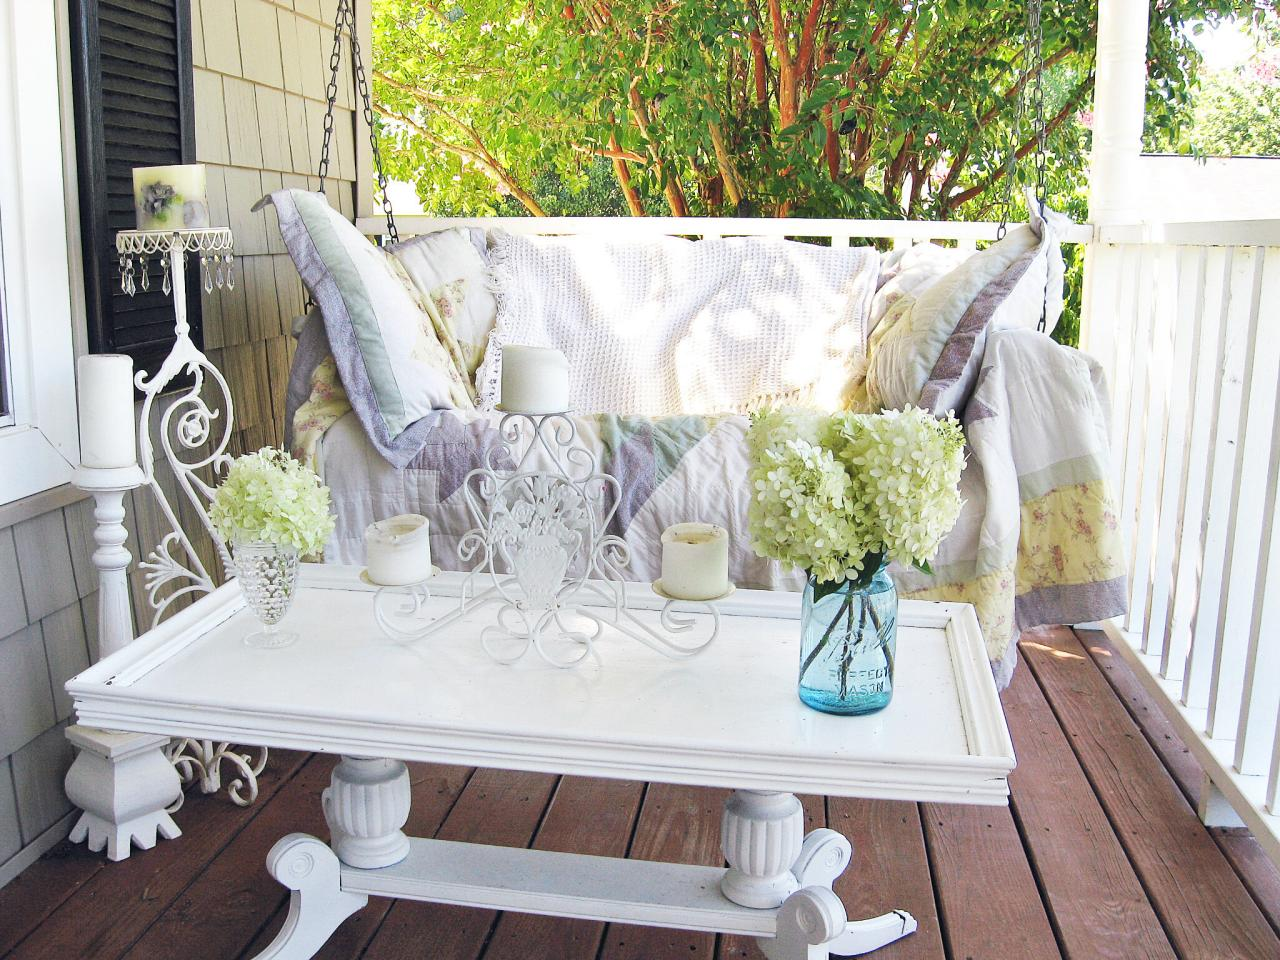 RMS-cobbcottage_shabby-chic-porch-swing_s4x3.jpg.rend.hgtvcom.1280.960